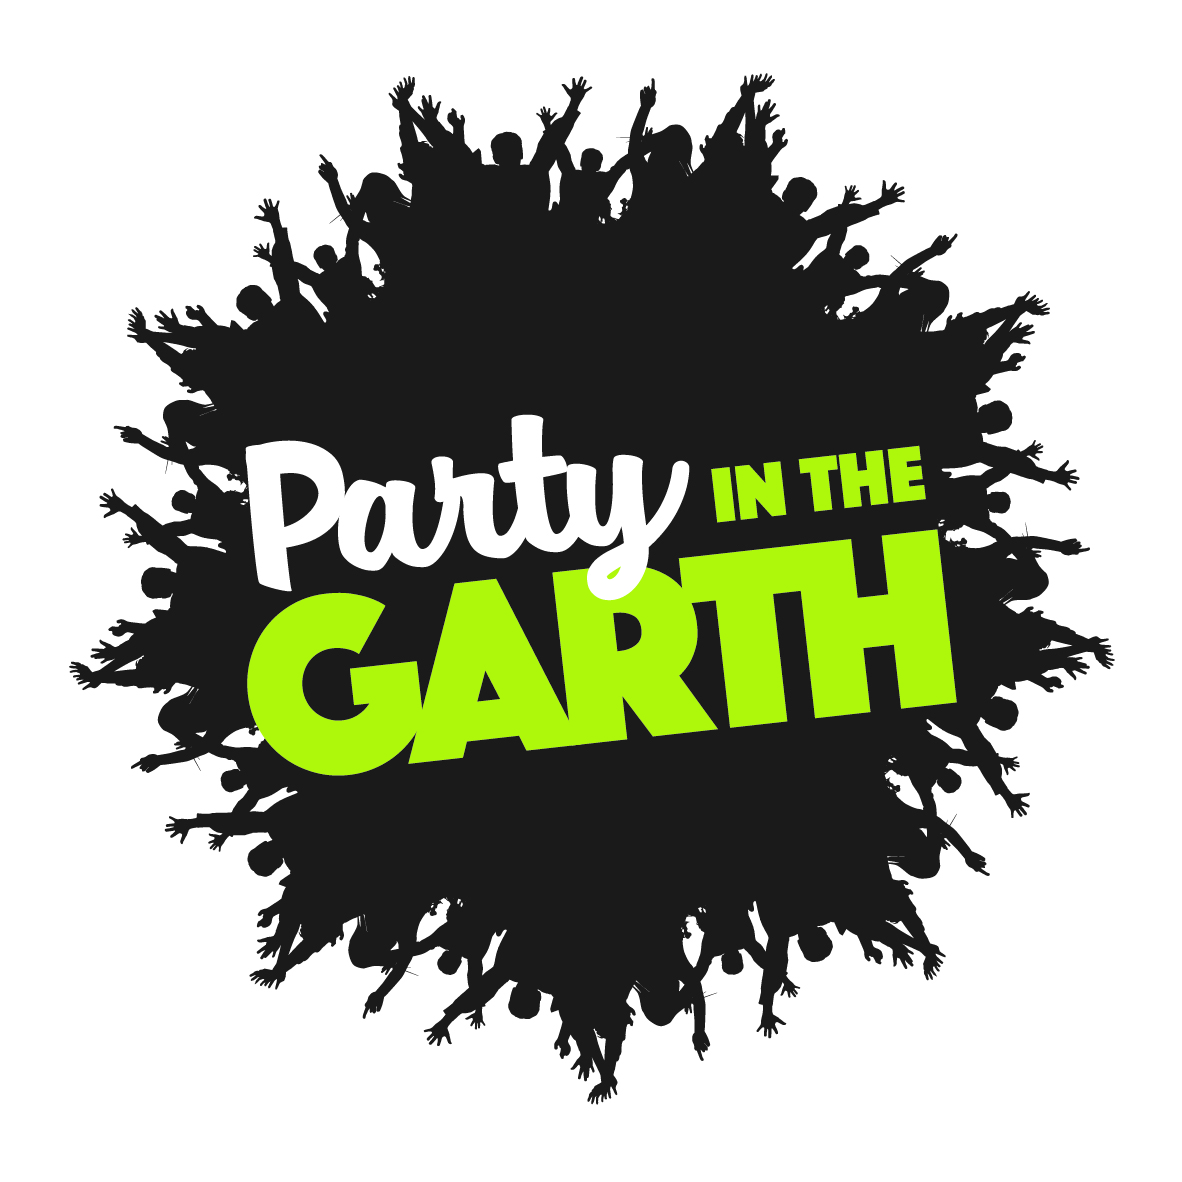 Party in the Garth 2019 banner image